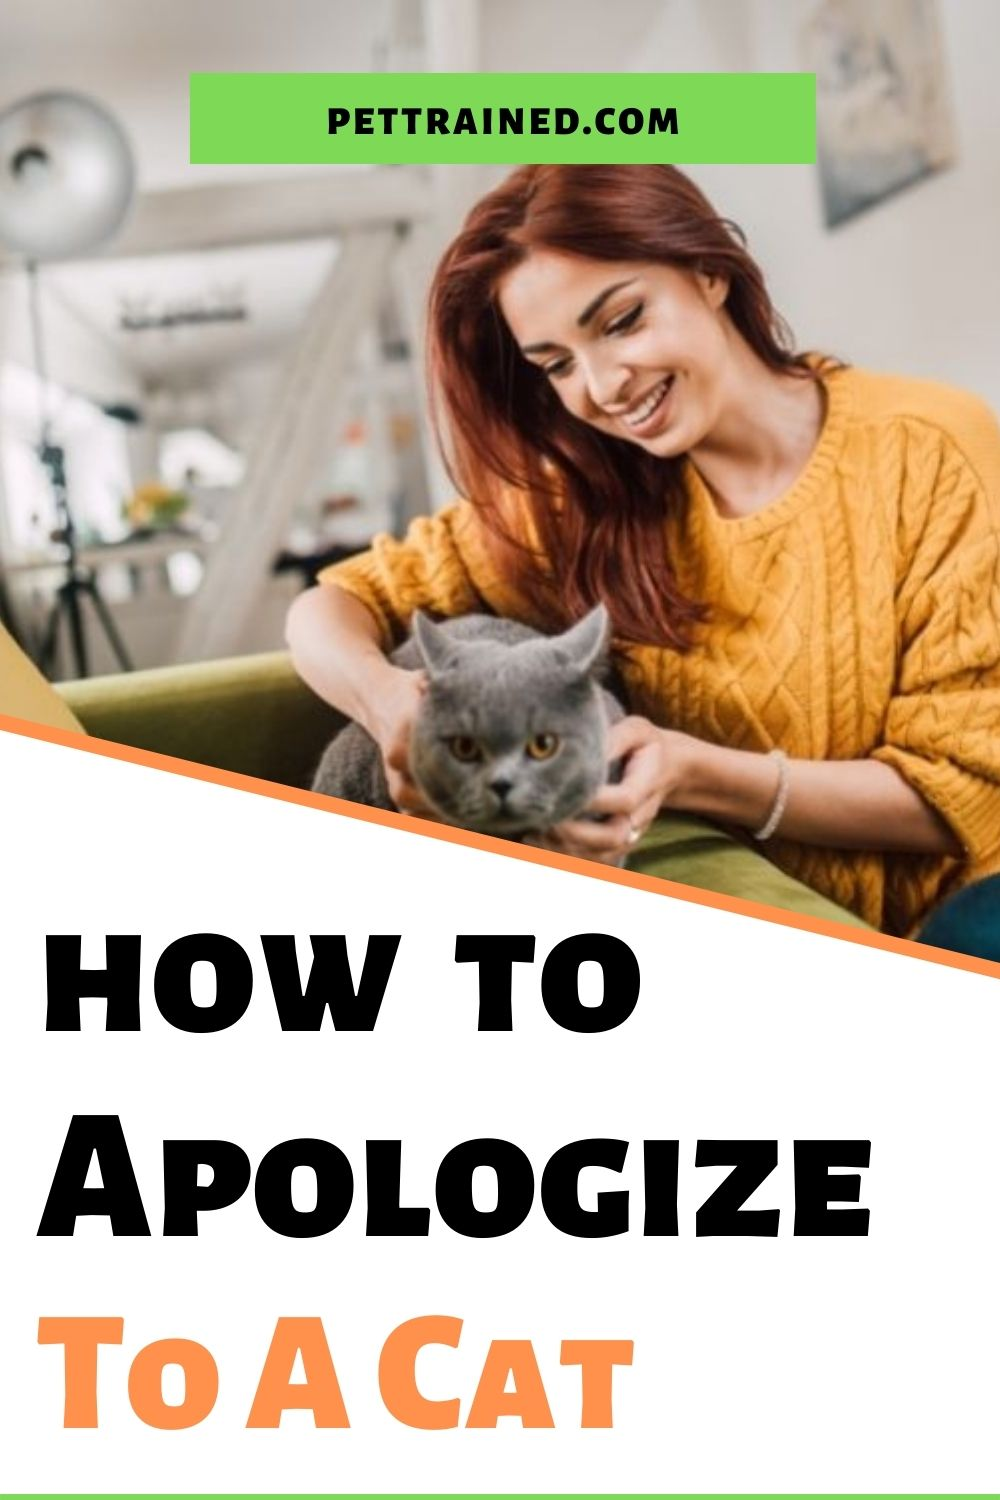 How to apologize to a cat